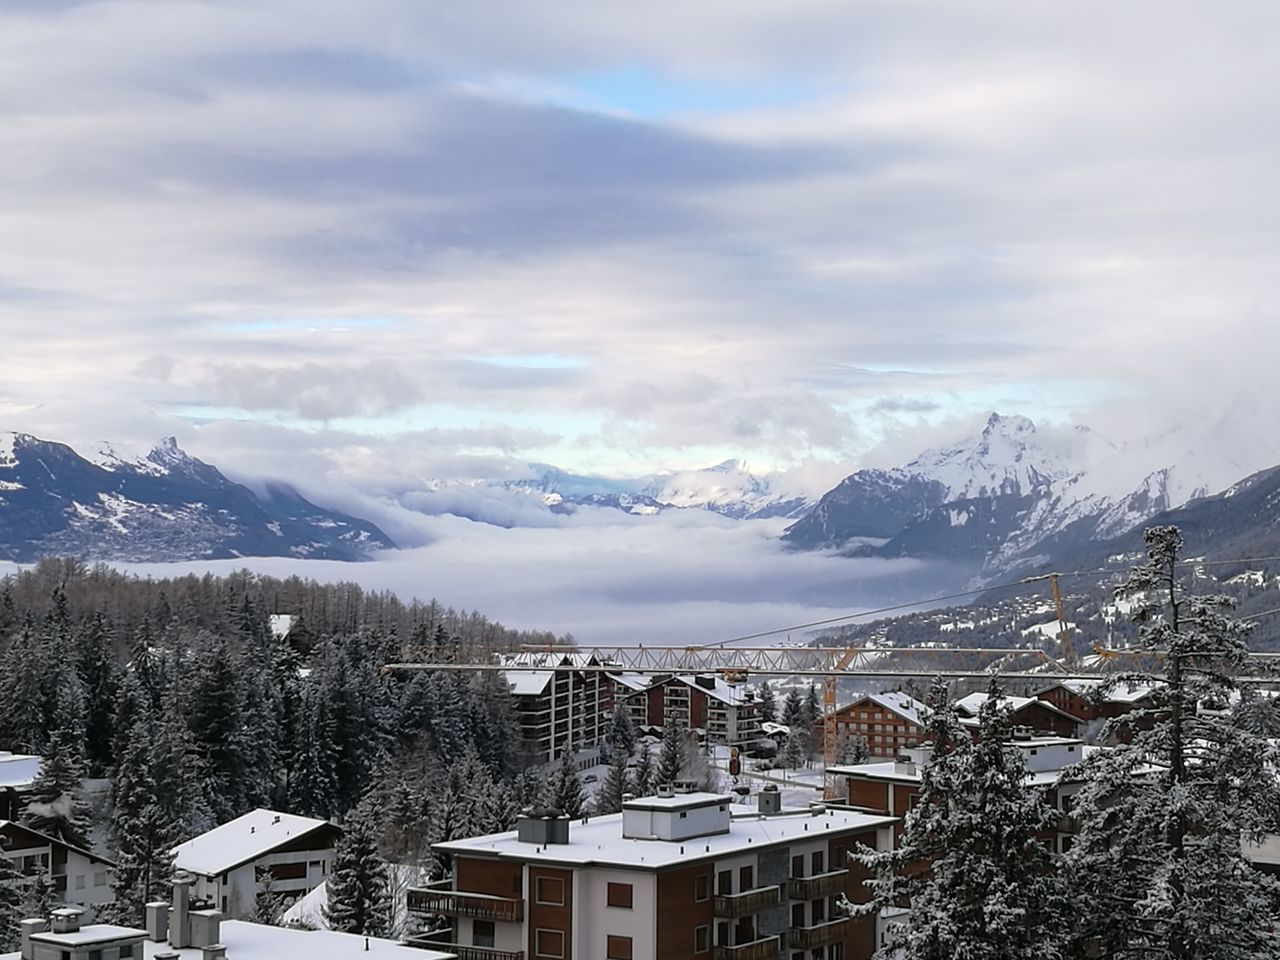 Totally covered in clouds Mountain Optics Leica Lens Outdoors Alps Nature Day Sky HuaweiP9 No People Mountain Range Cloud - Sky Beauty Morning Mist Adapted To The City